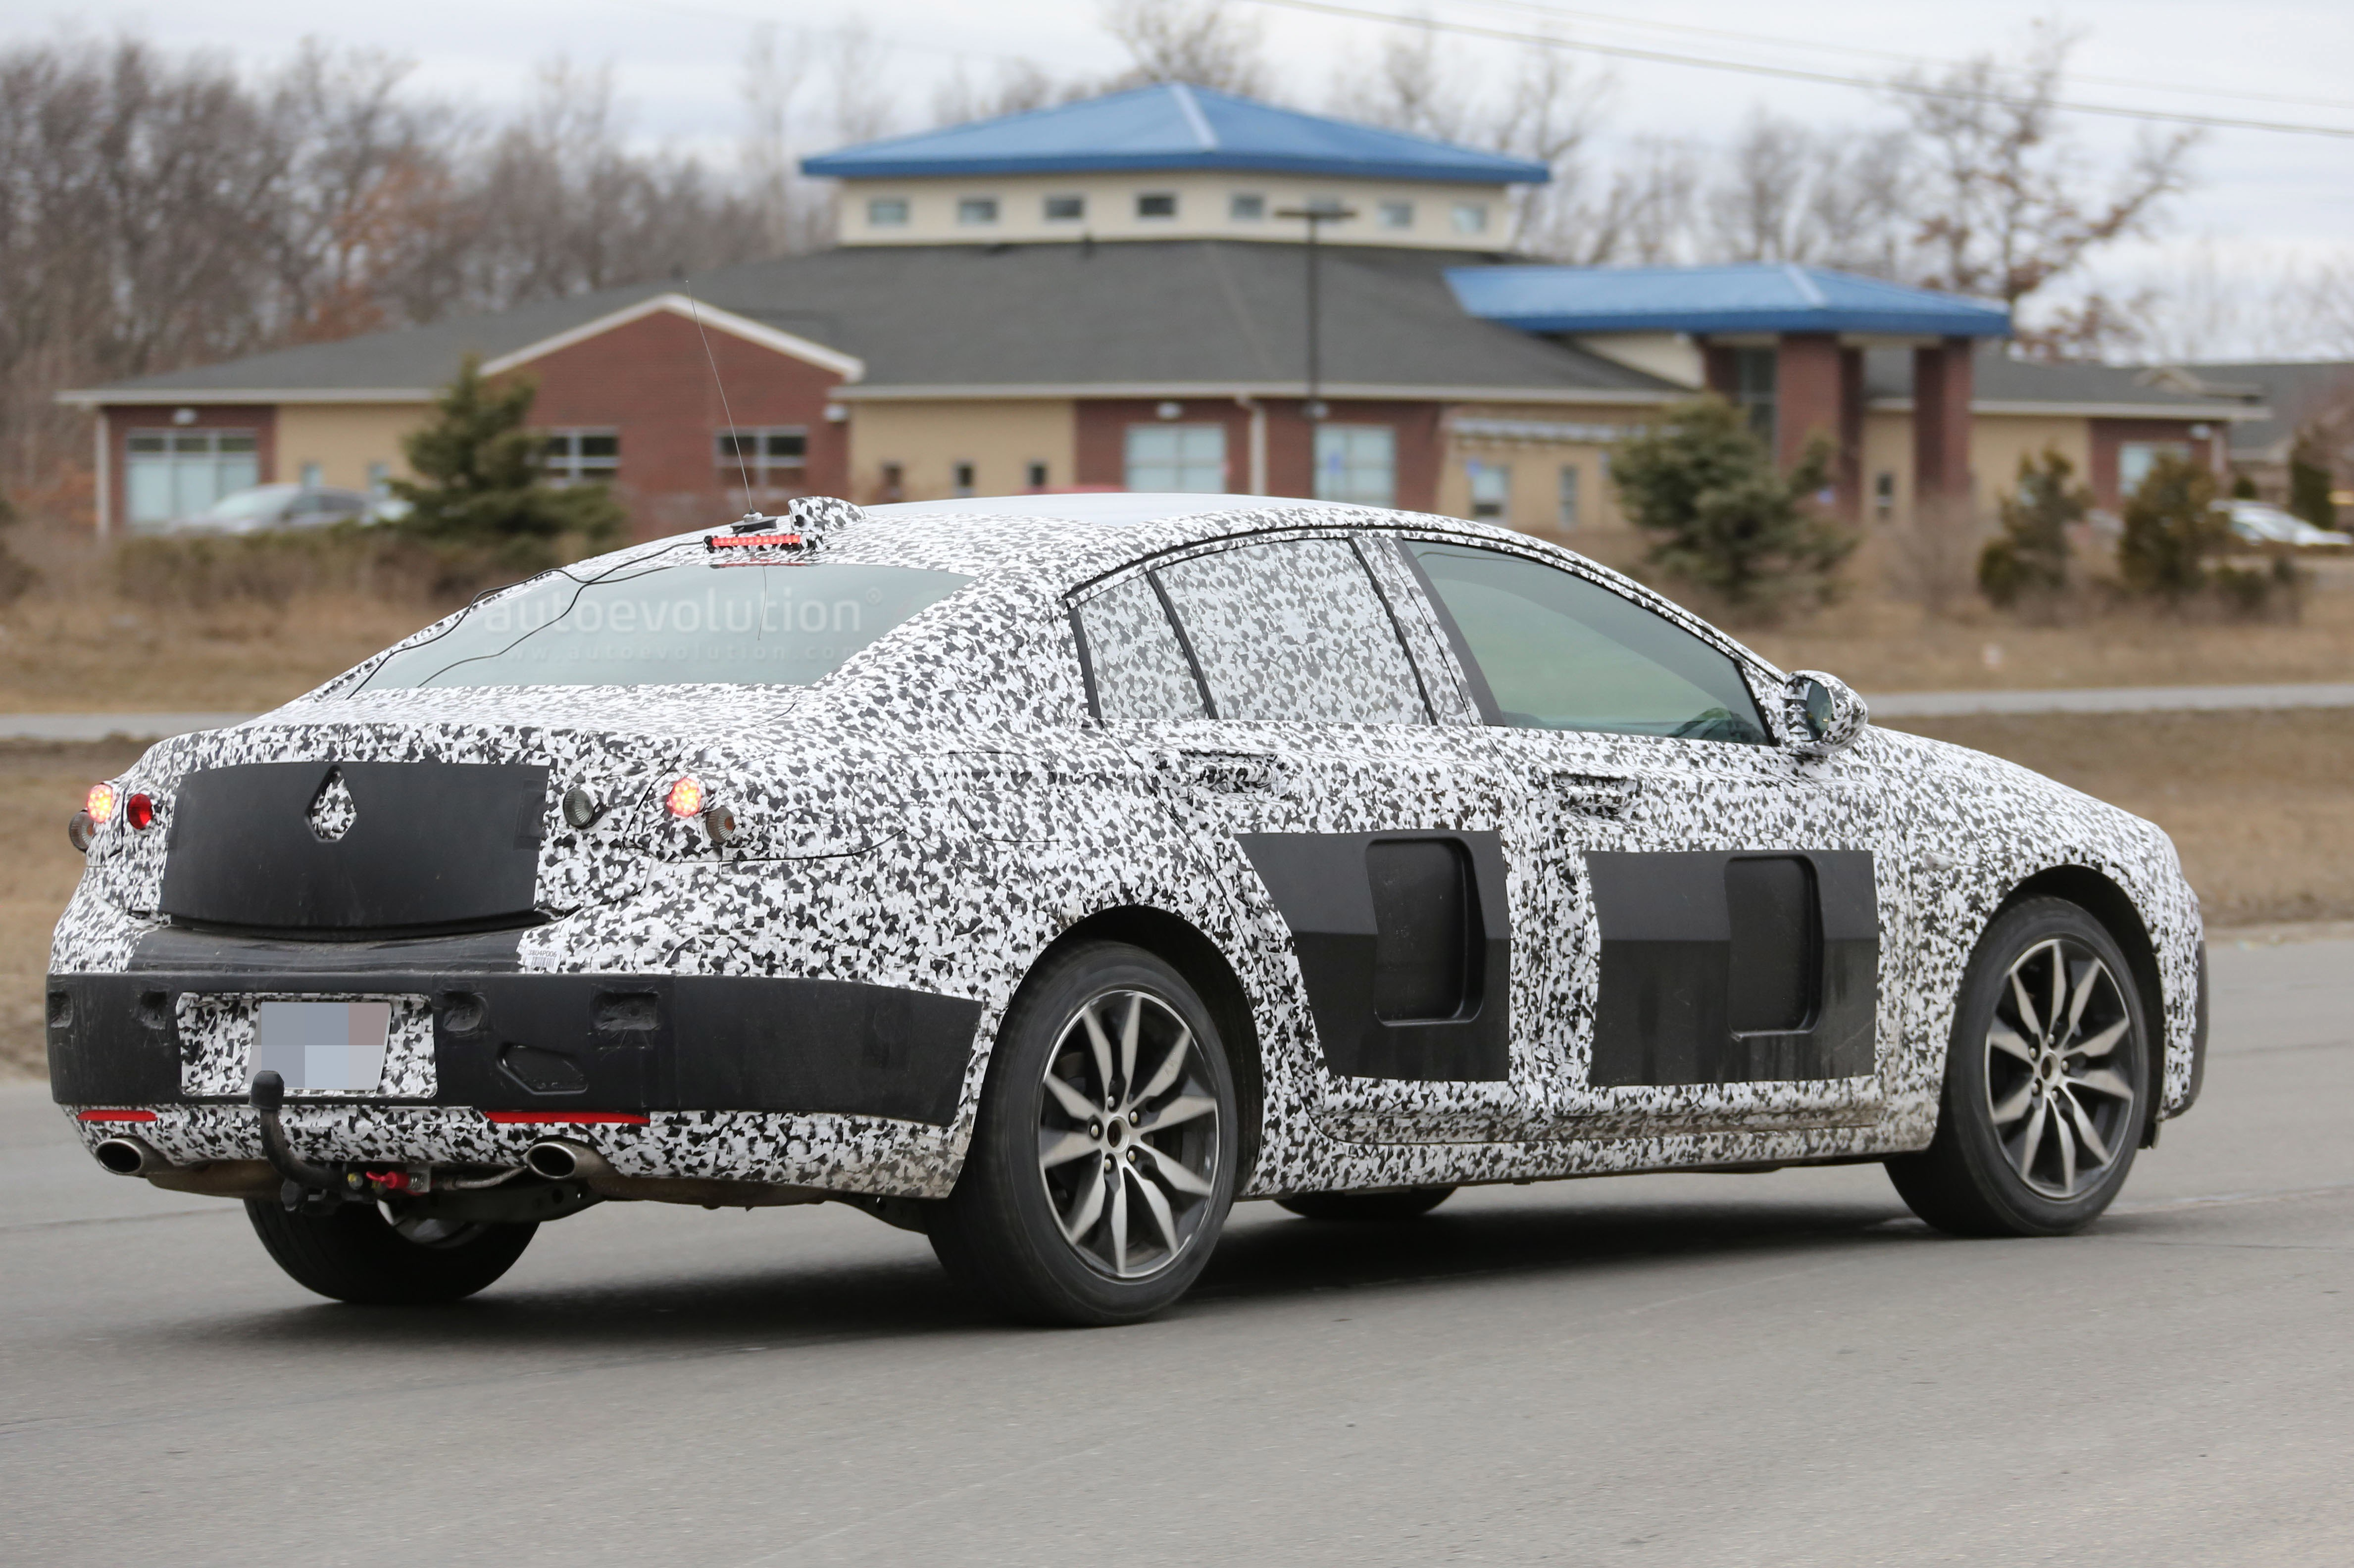 2018 Buick Regal Spied for the First Time - autoevolution